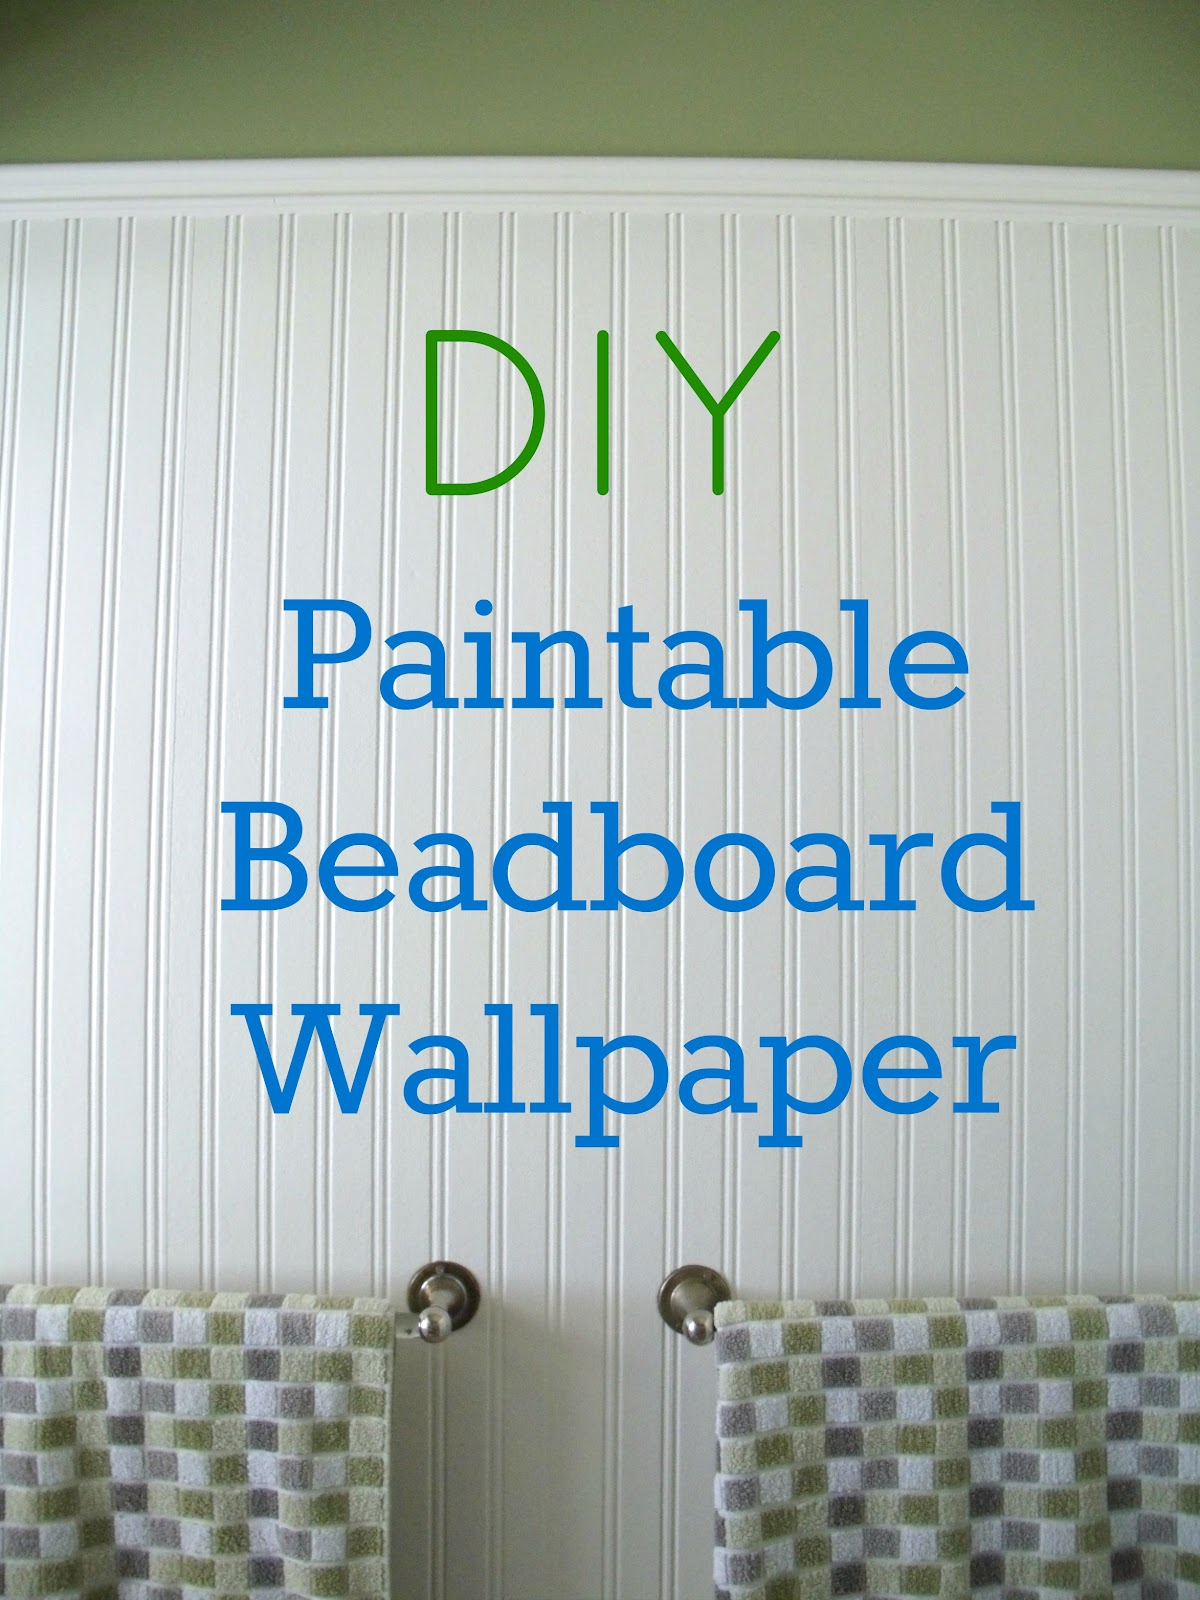 diy paintable wall doctor beadboard wallpaper for wall decor ideas